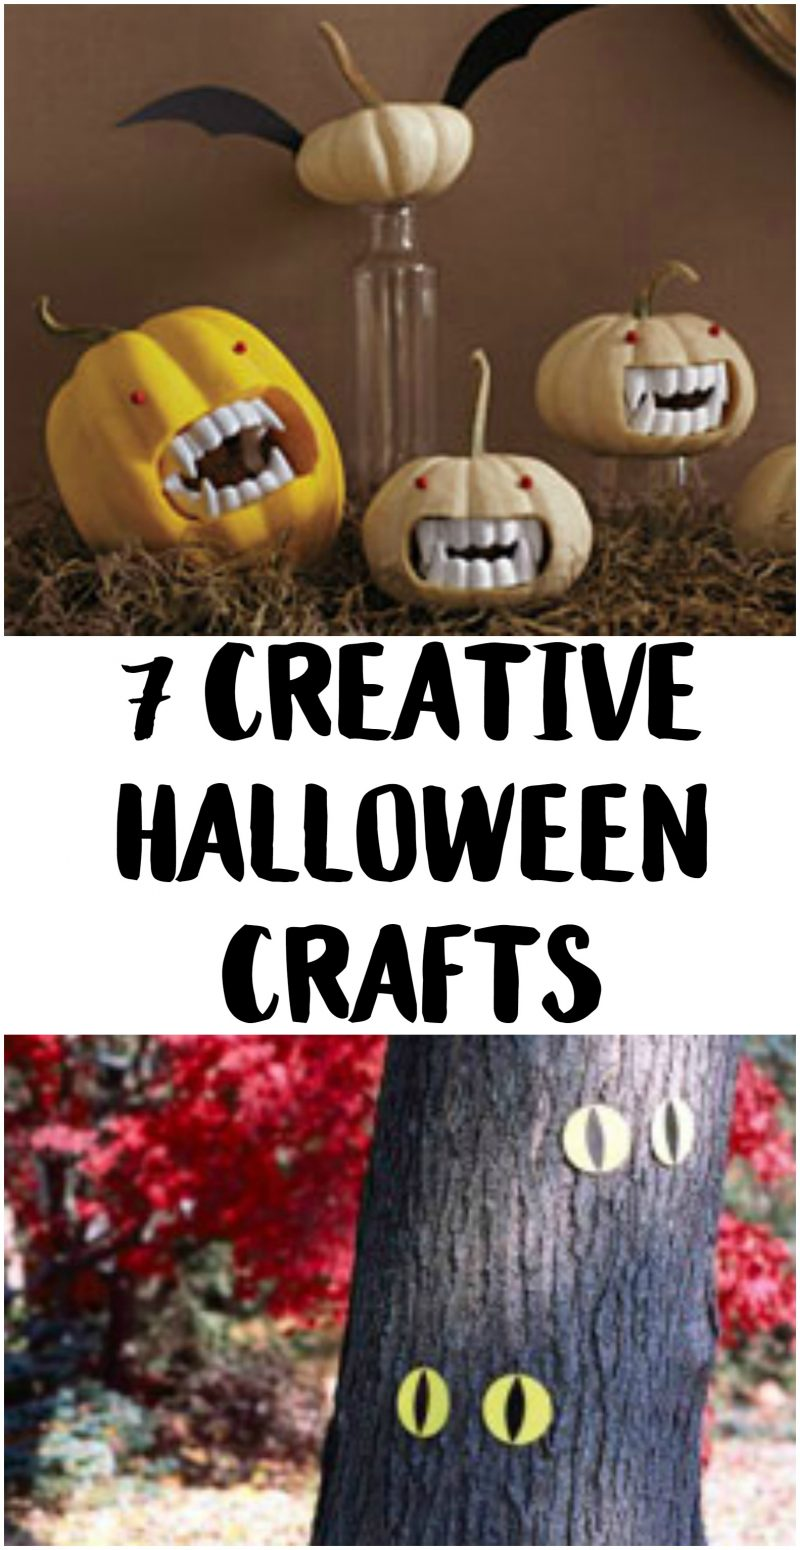 7-creative-halloween-crafts-for-adults